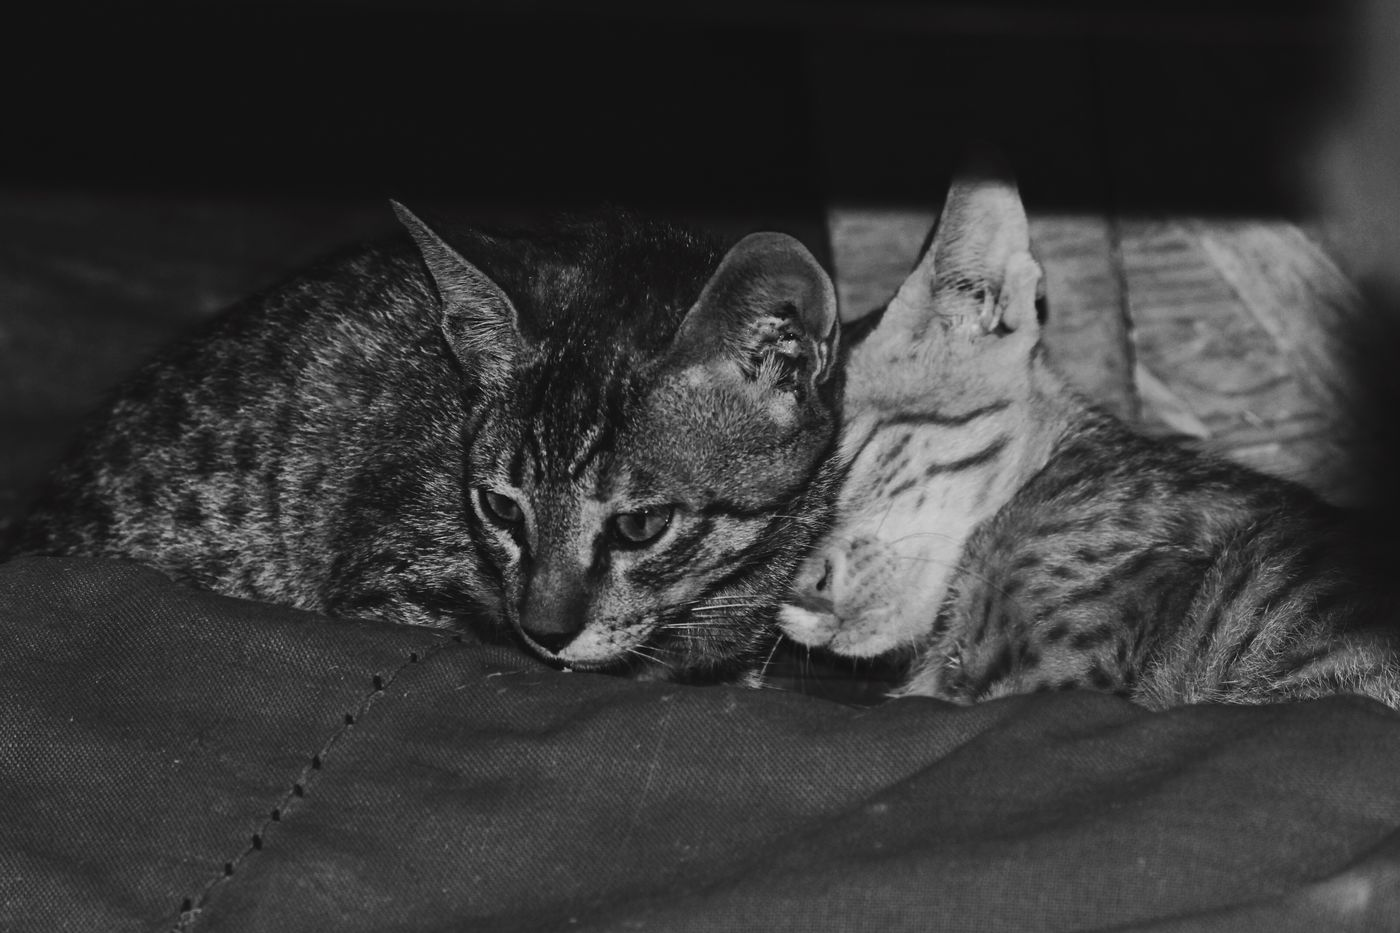 Photography Pets Animals Cats Kittens Felines Cute Siblings Sibling Love Resting Blackandwhite Black And White Black & White Siālkot Sialkot Pakistan Indoors